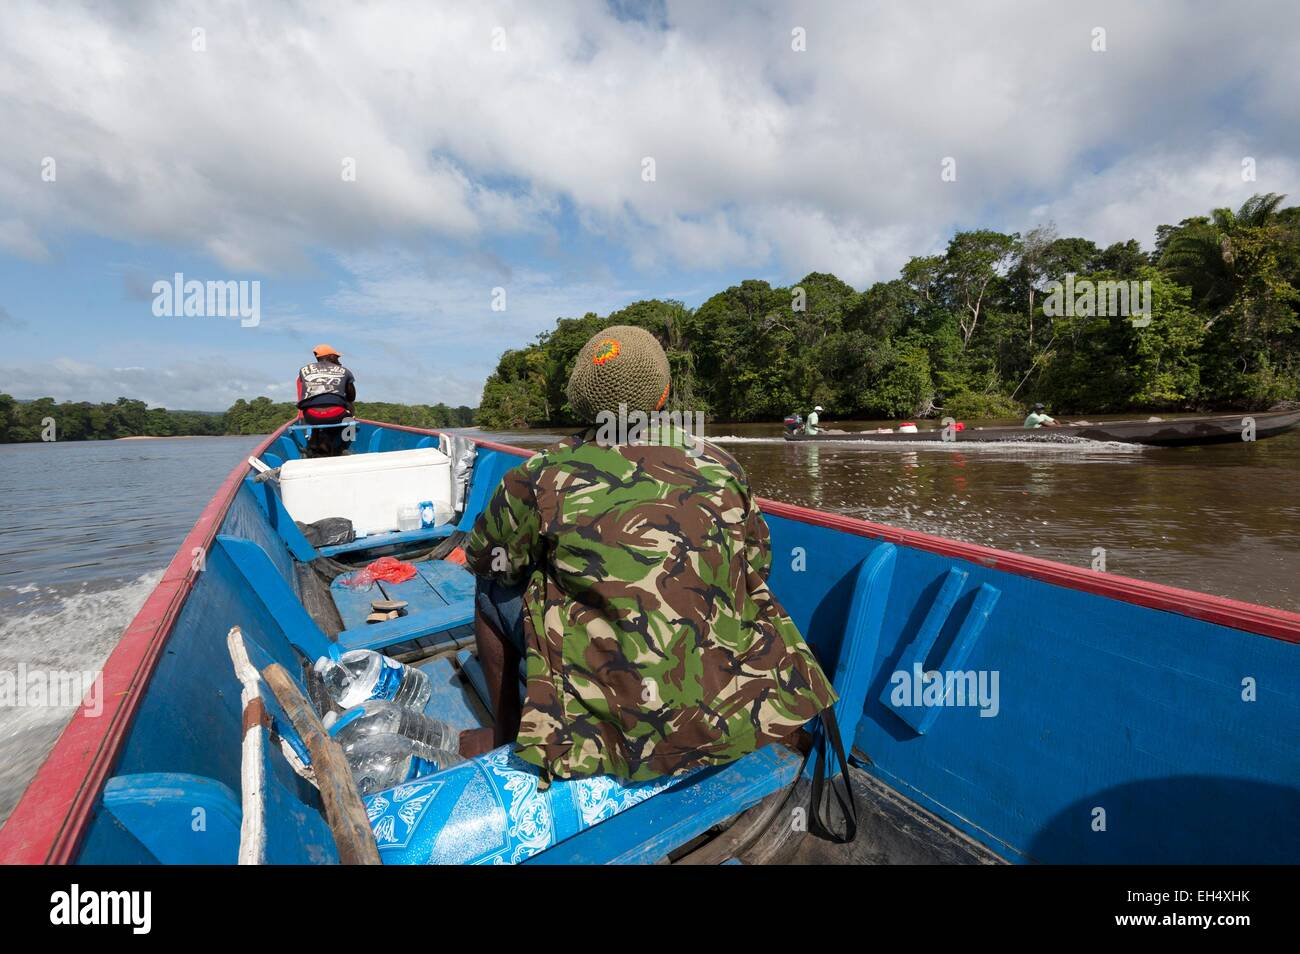 Republic of Suriname, two pirogues crossing on the Tapanahony River an affluent of Maroni - Stock Image